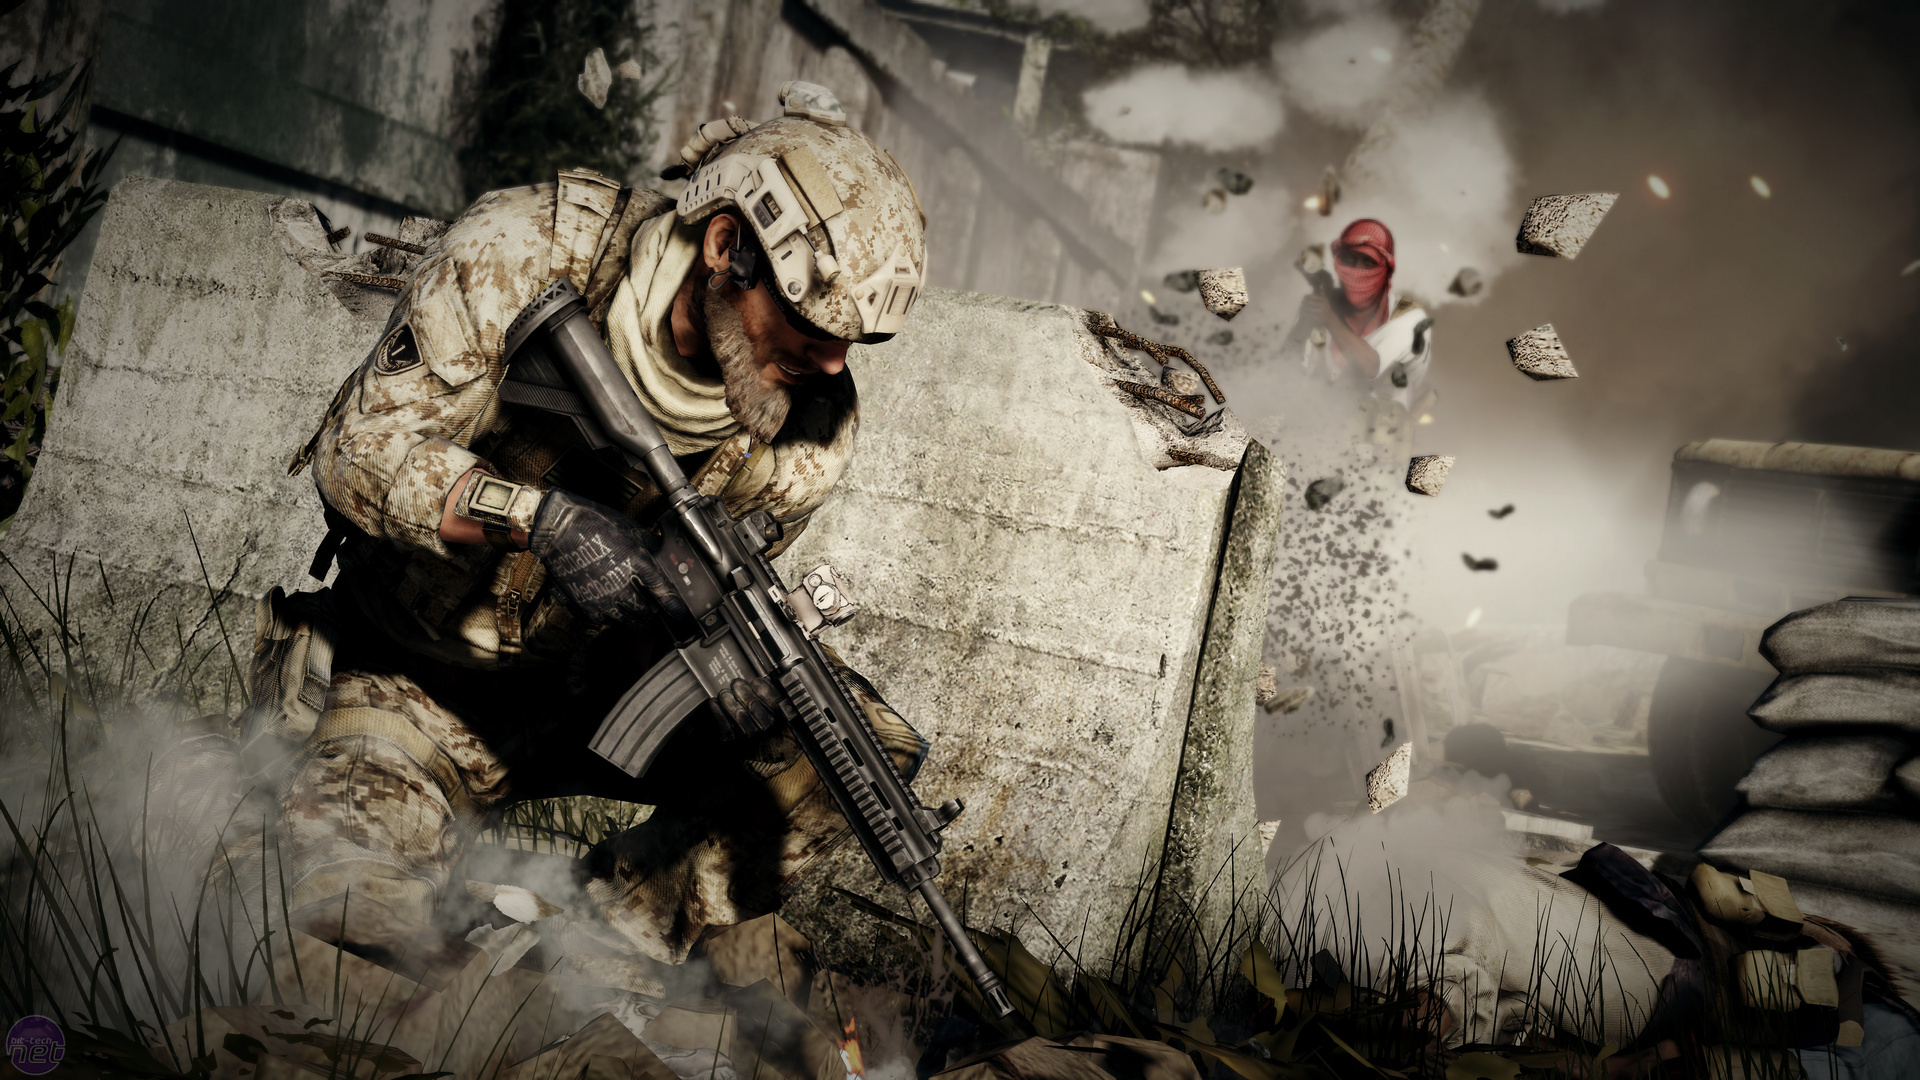 Medal Of Honor Warfighter Wallpaper 1920x1080 52560